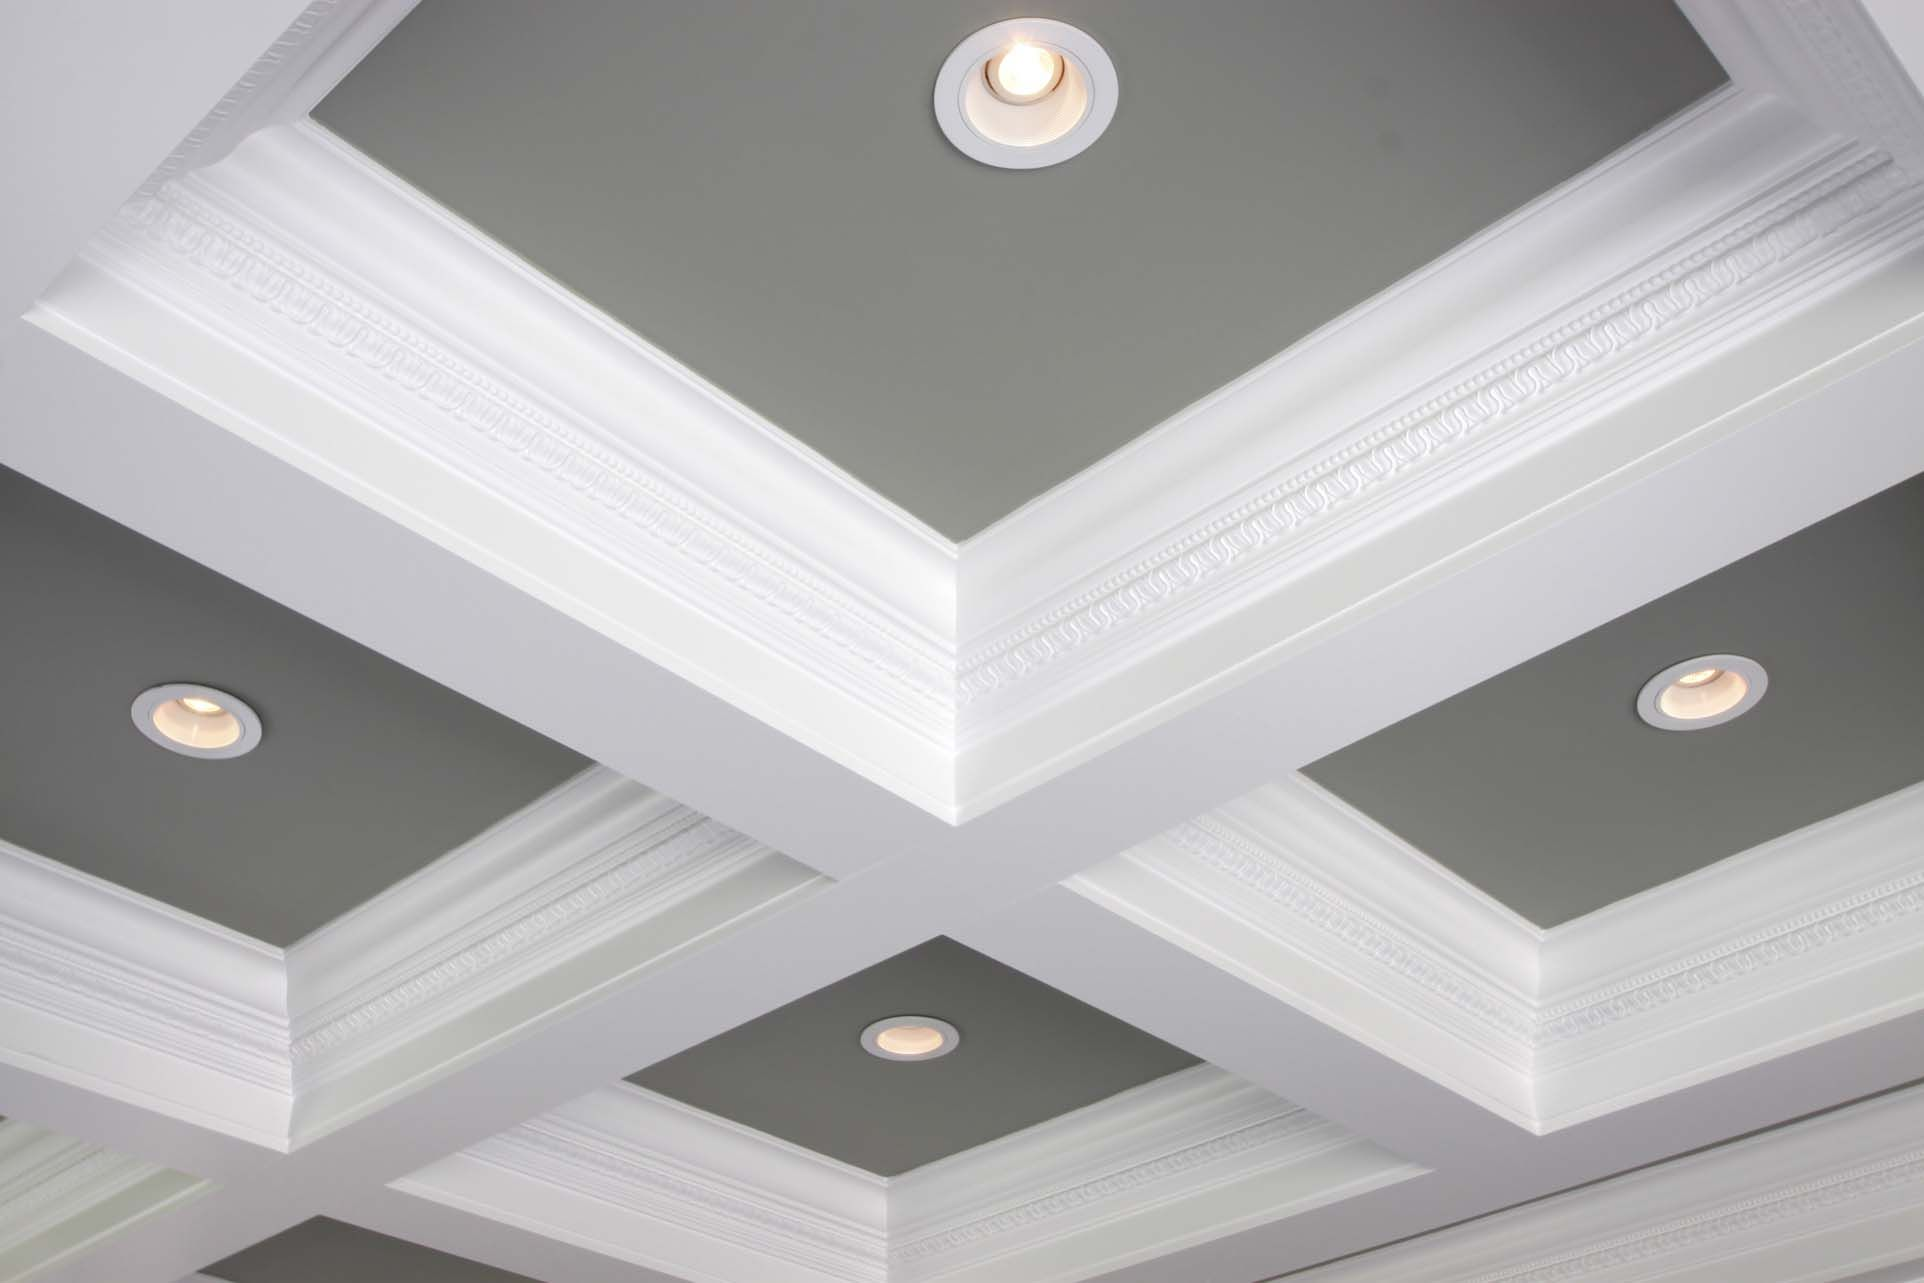 Coffered Ceiling Design Amp Manufacturing Company Custom Box Beam Ceiling Design Systems Amp Shall Coffered Ceiling Design Coffered Ceiling Ceiling Design